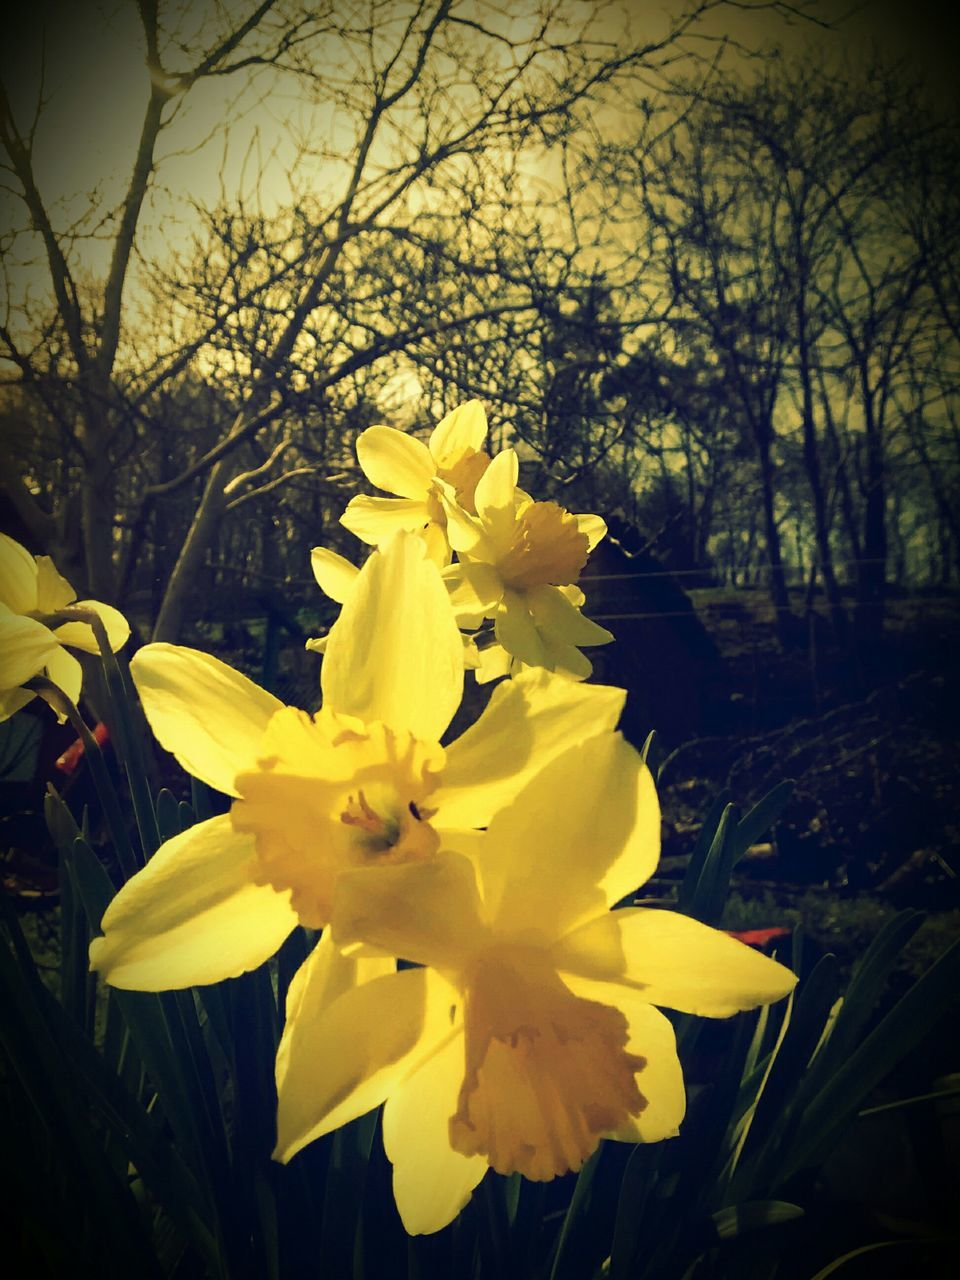 flower, yellow, petal, fragility, beauty in nature, nature, growth, flower head, freshness, daffodil, blossom, springtime, no people, plant, outdoors, day, blooming, close-up, tree, crocus